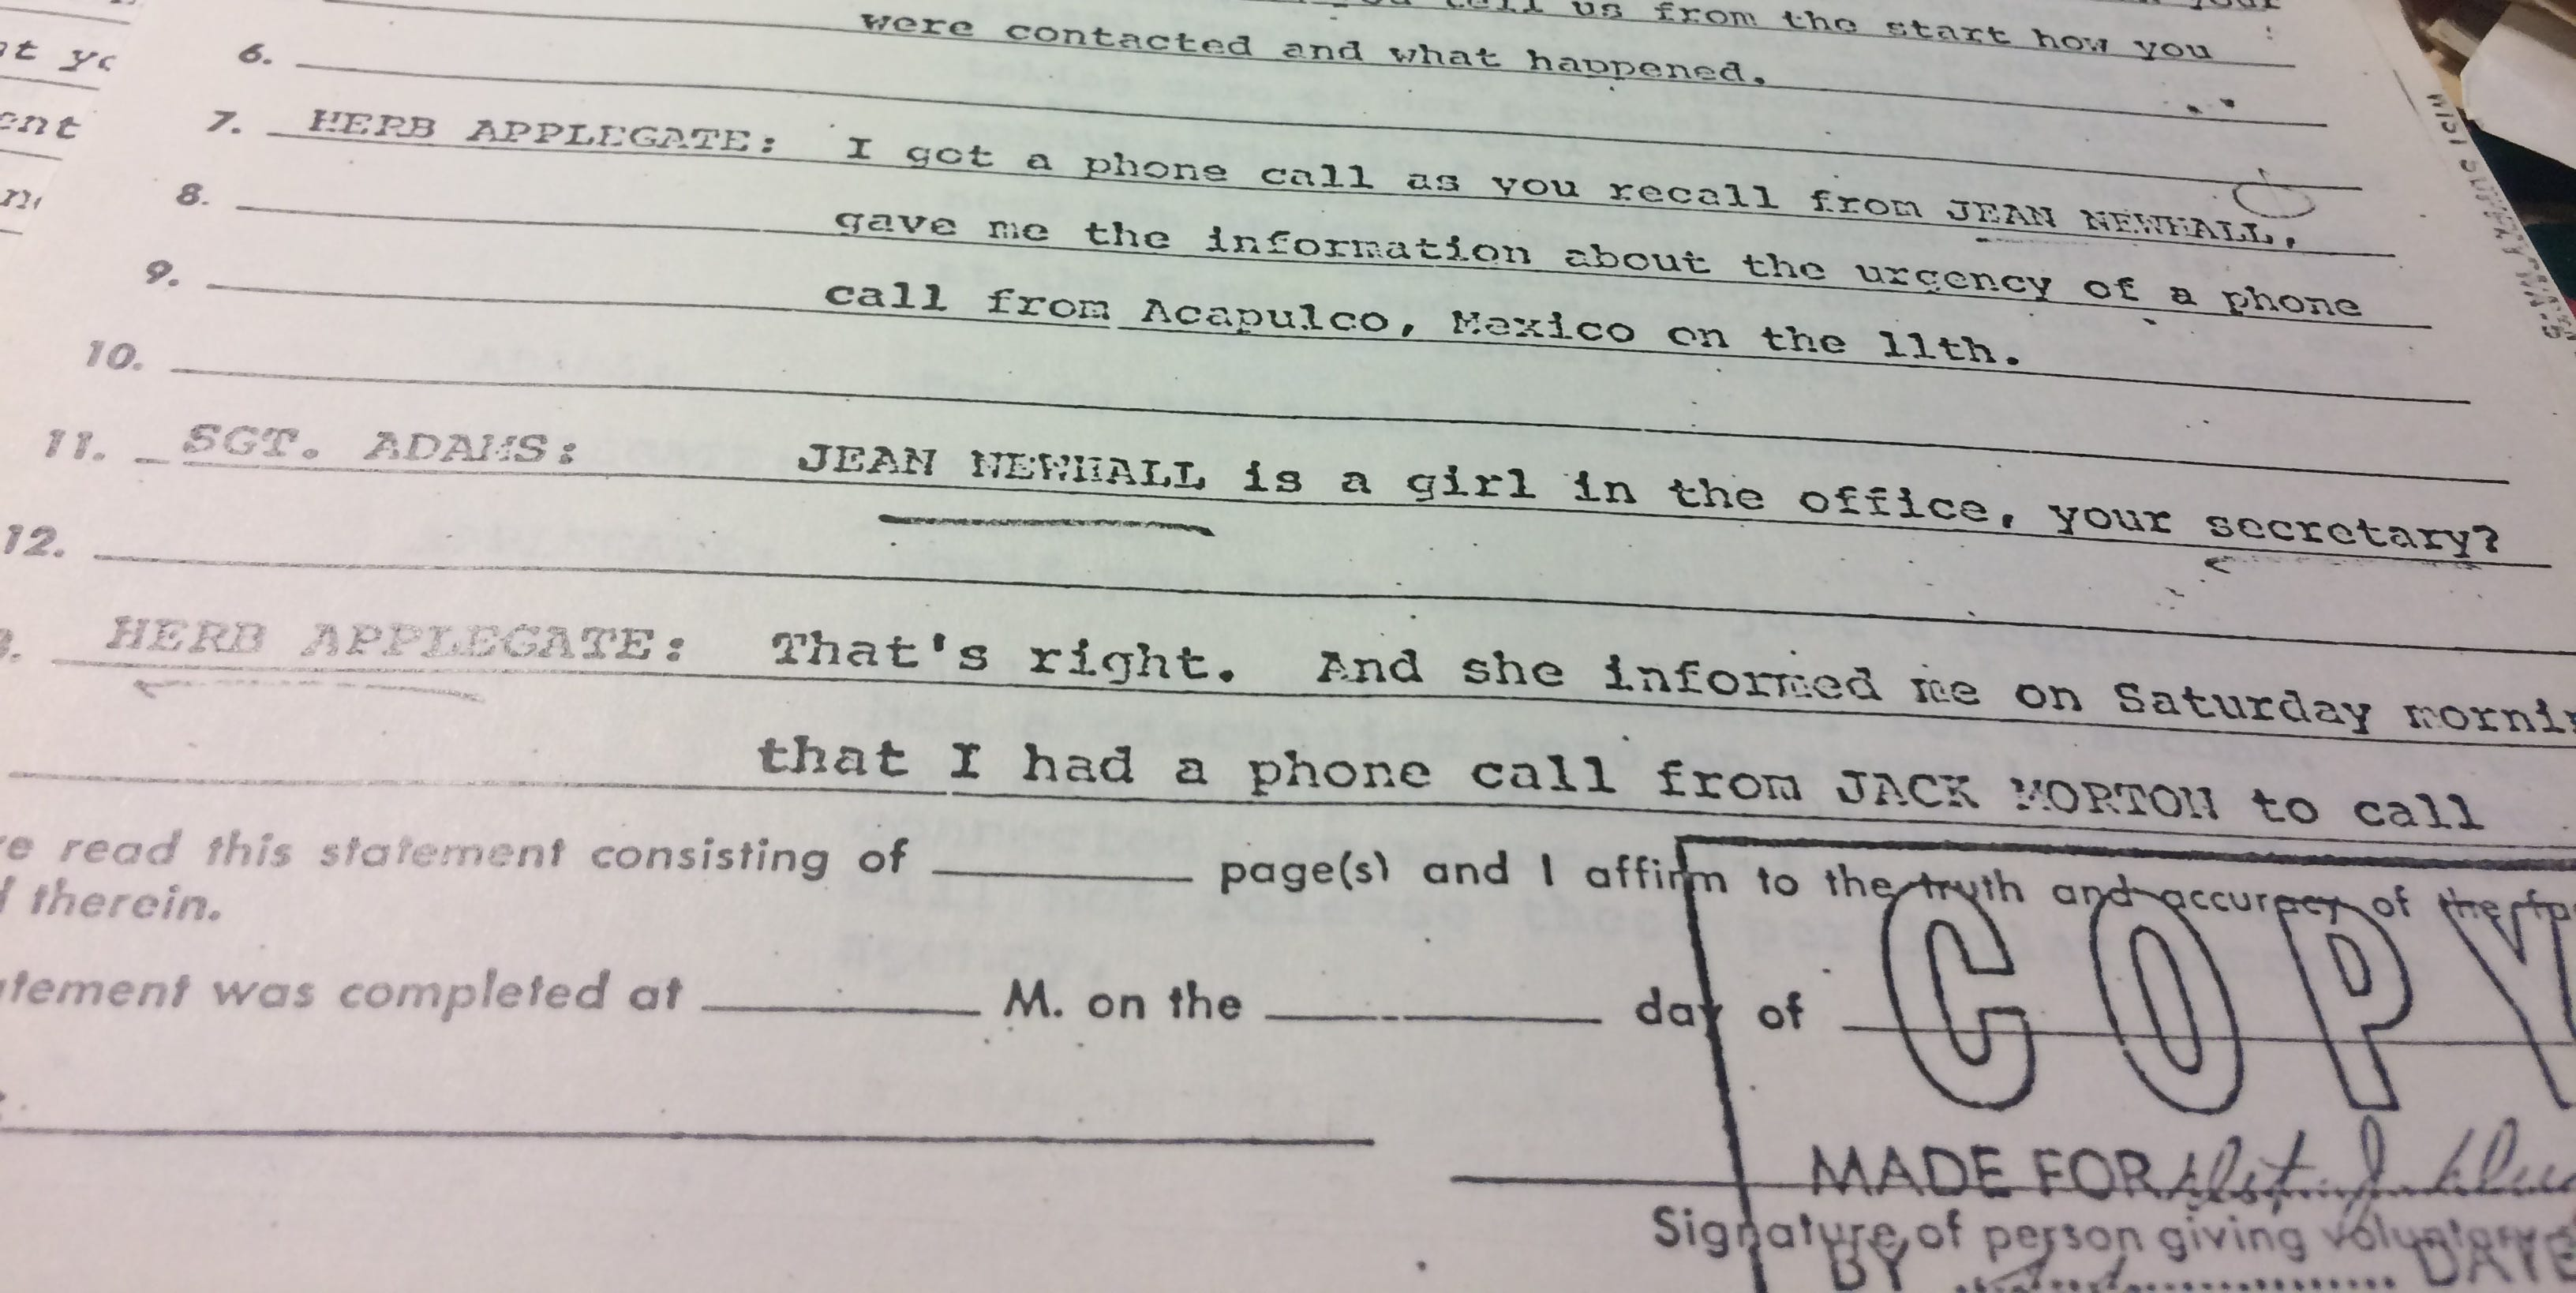 This is the Clark County Sheriff's Office report about an interview with Herb Applegate. The agency was investigating the shooting death of a man whom Applegate had sent to Las Vegas to seize a car.